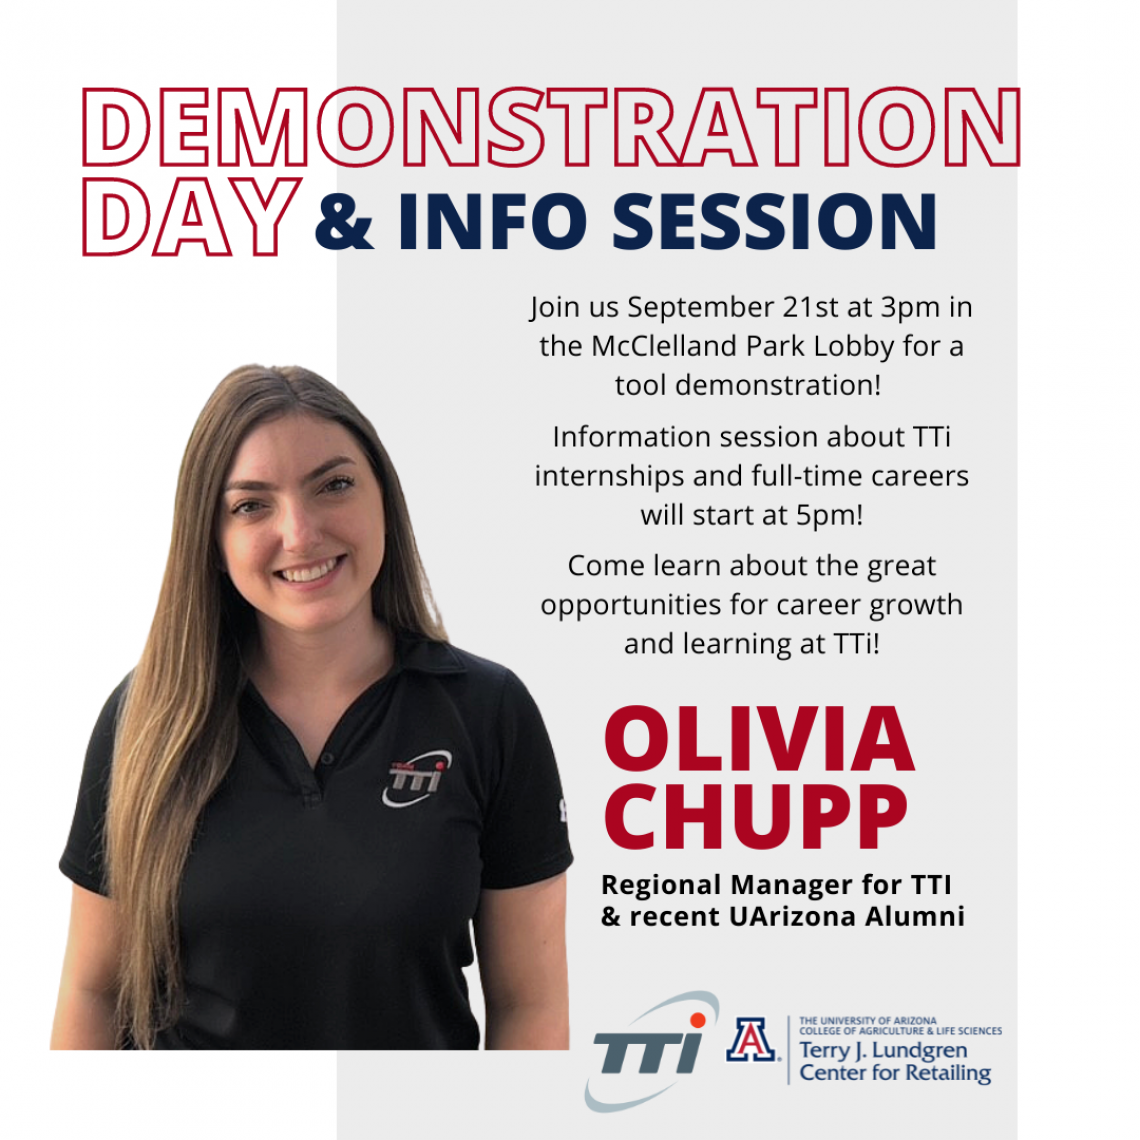 Flyer for Demonstration Day & Info Session with Olivia Chupp from TTI